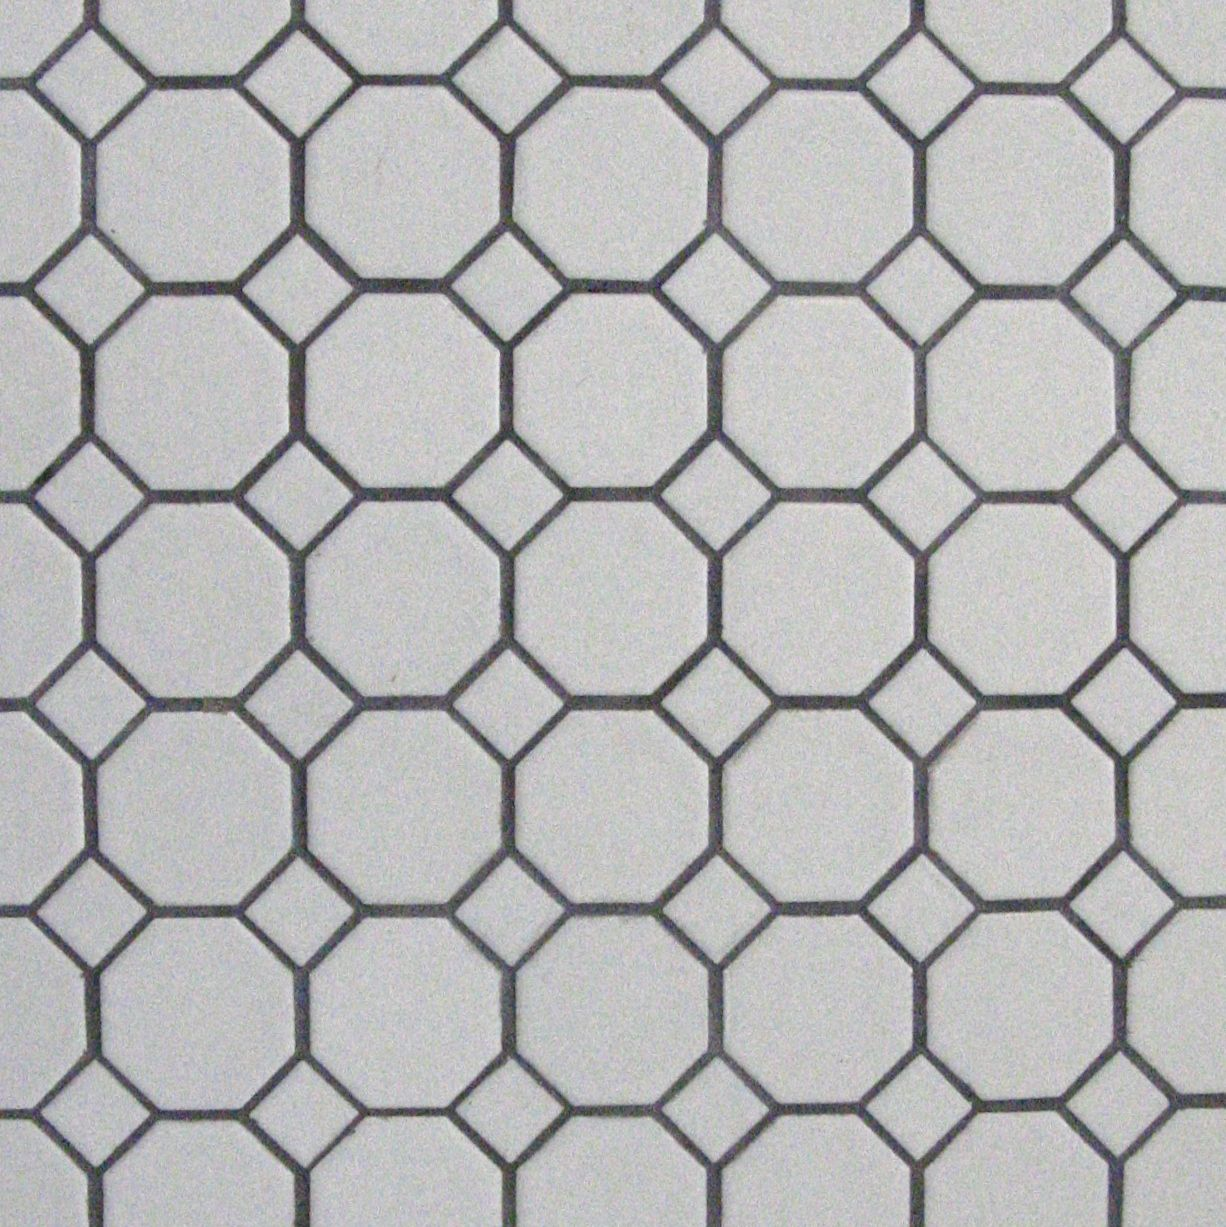 We chose simple black and white hexagon tile floors for the girls we chose simple black and white hexagon tile floors for the girls bathroom remodel dailygadgetfo Gallery